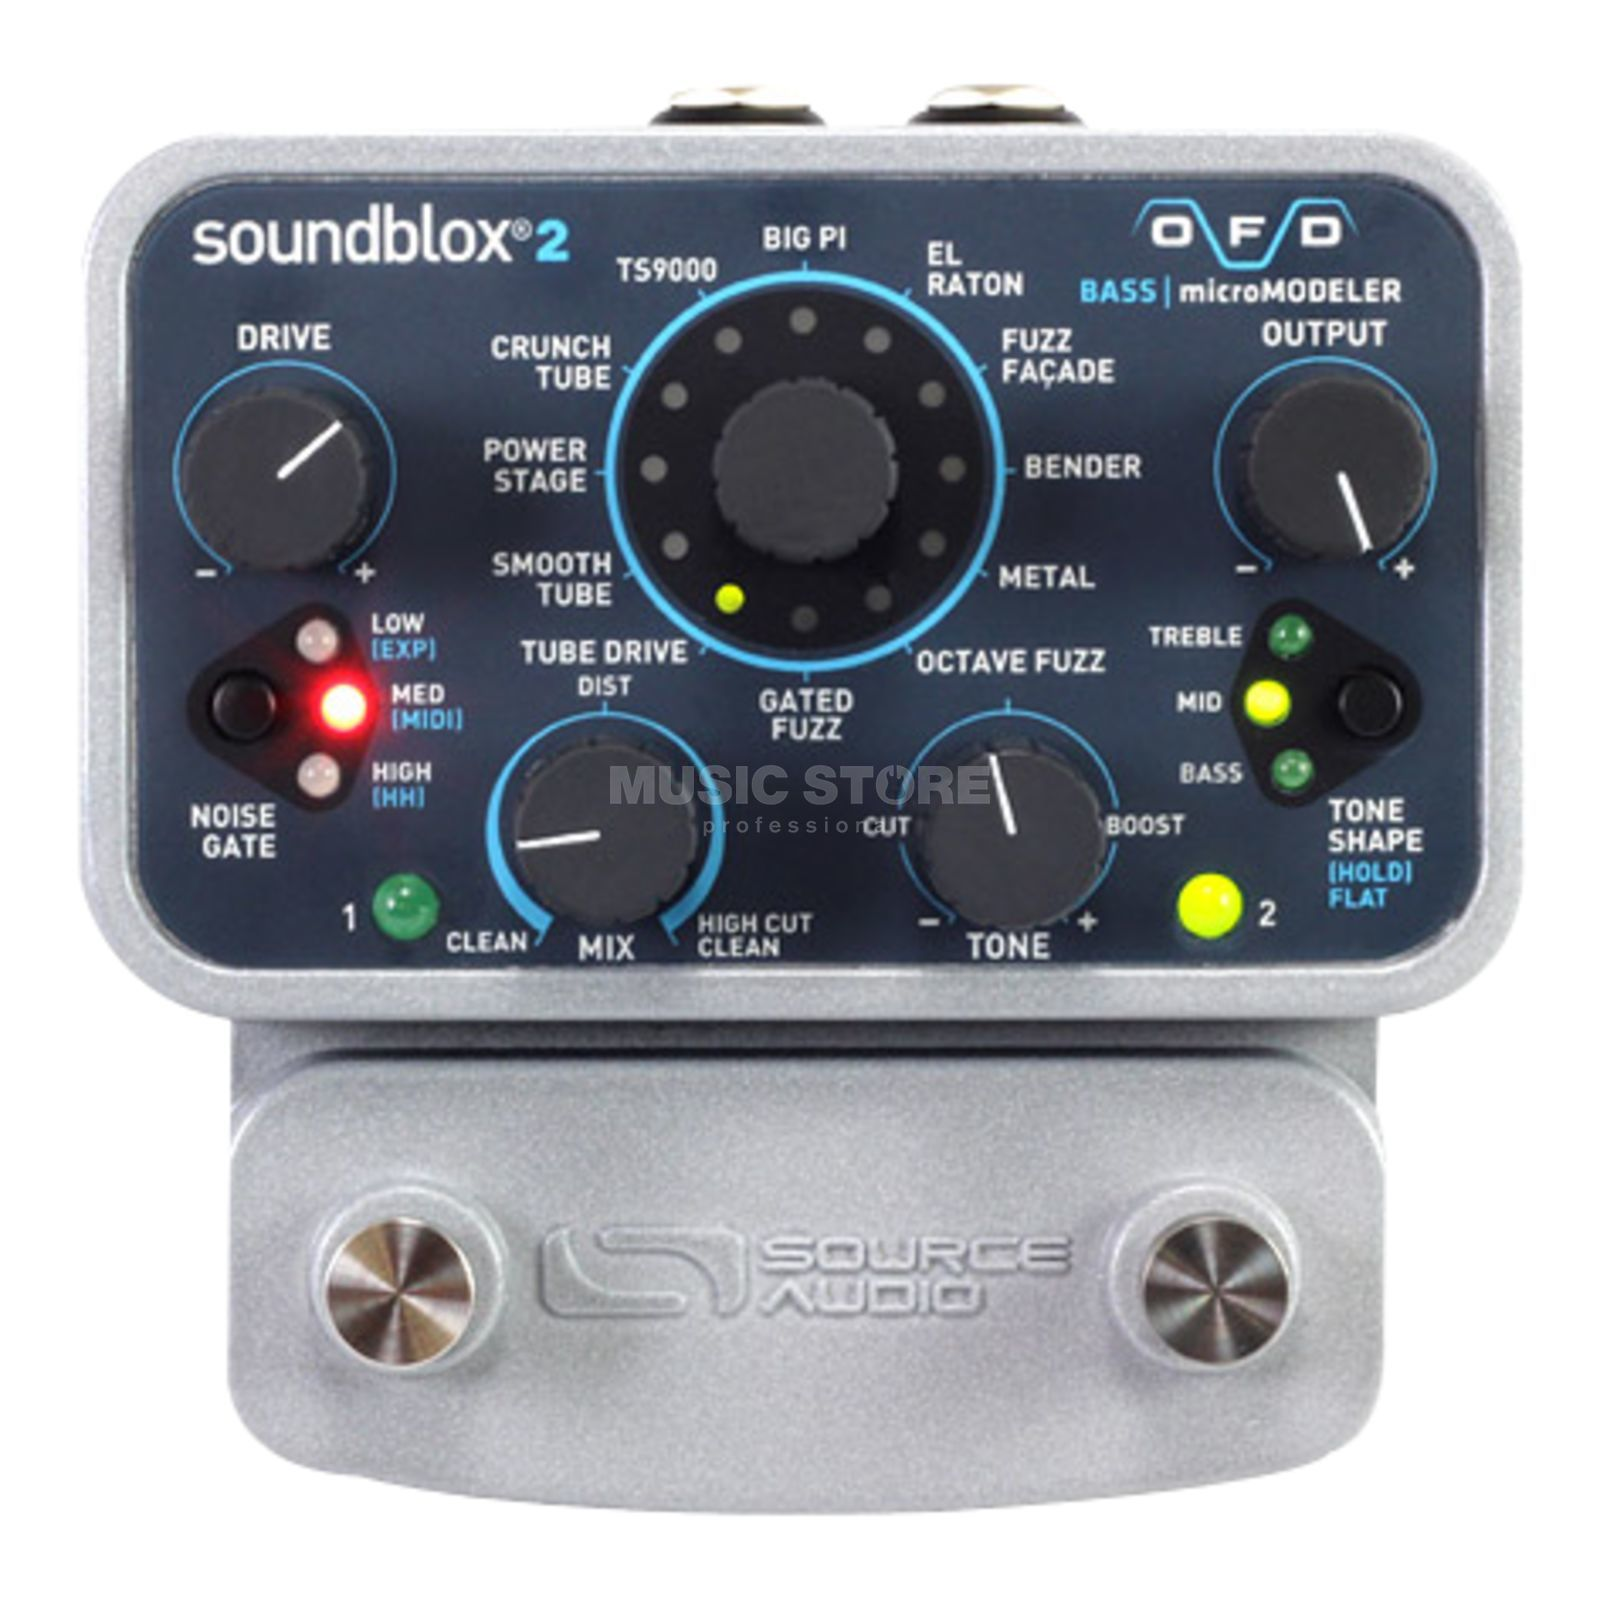 Source Audio Soundblox 2 OFD microModeler  Изображение товара